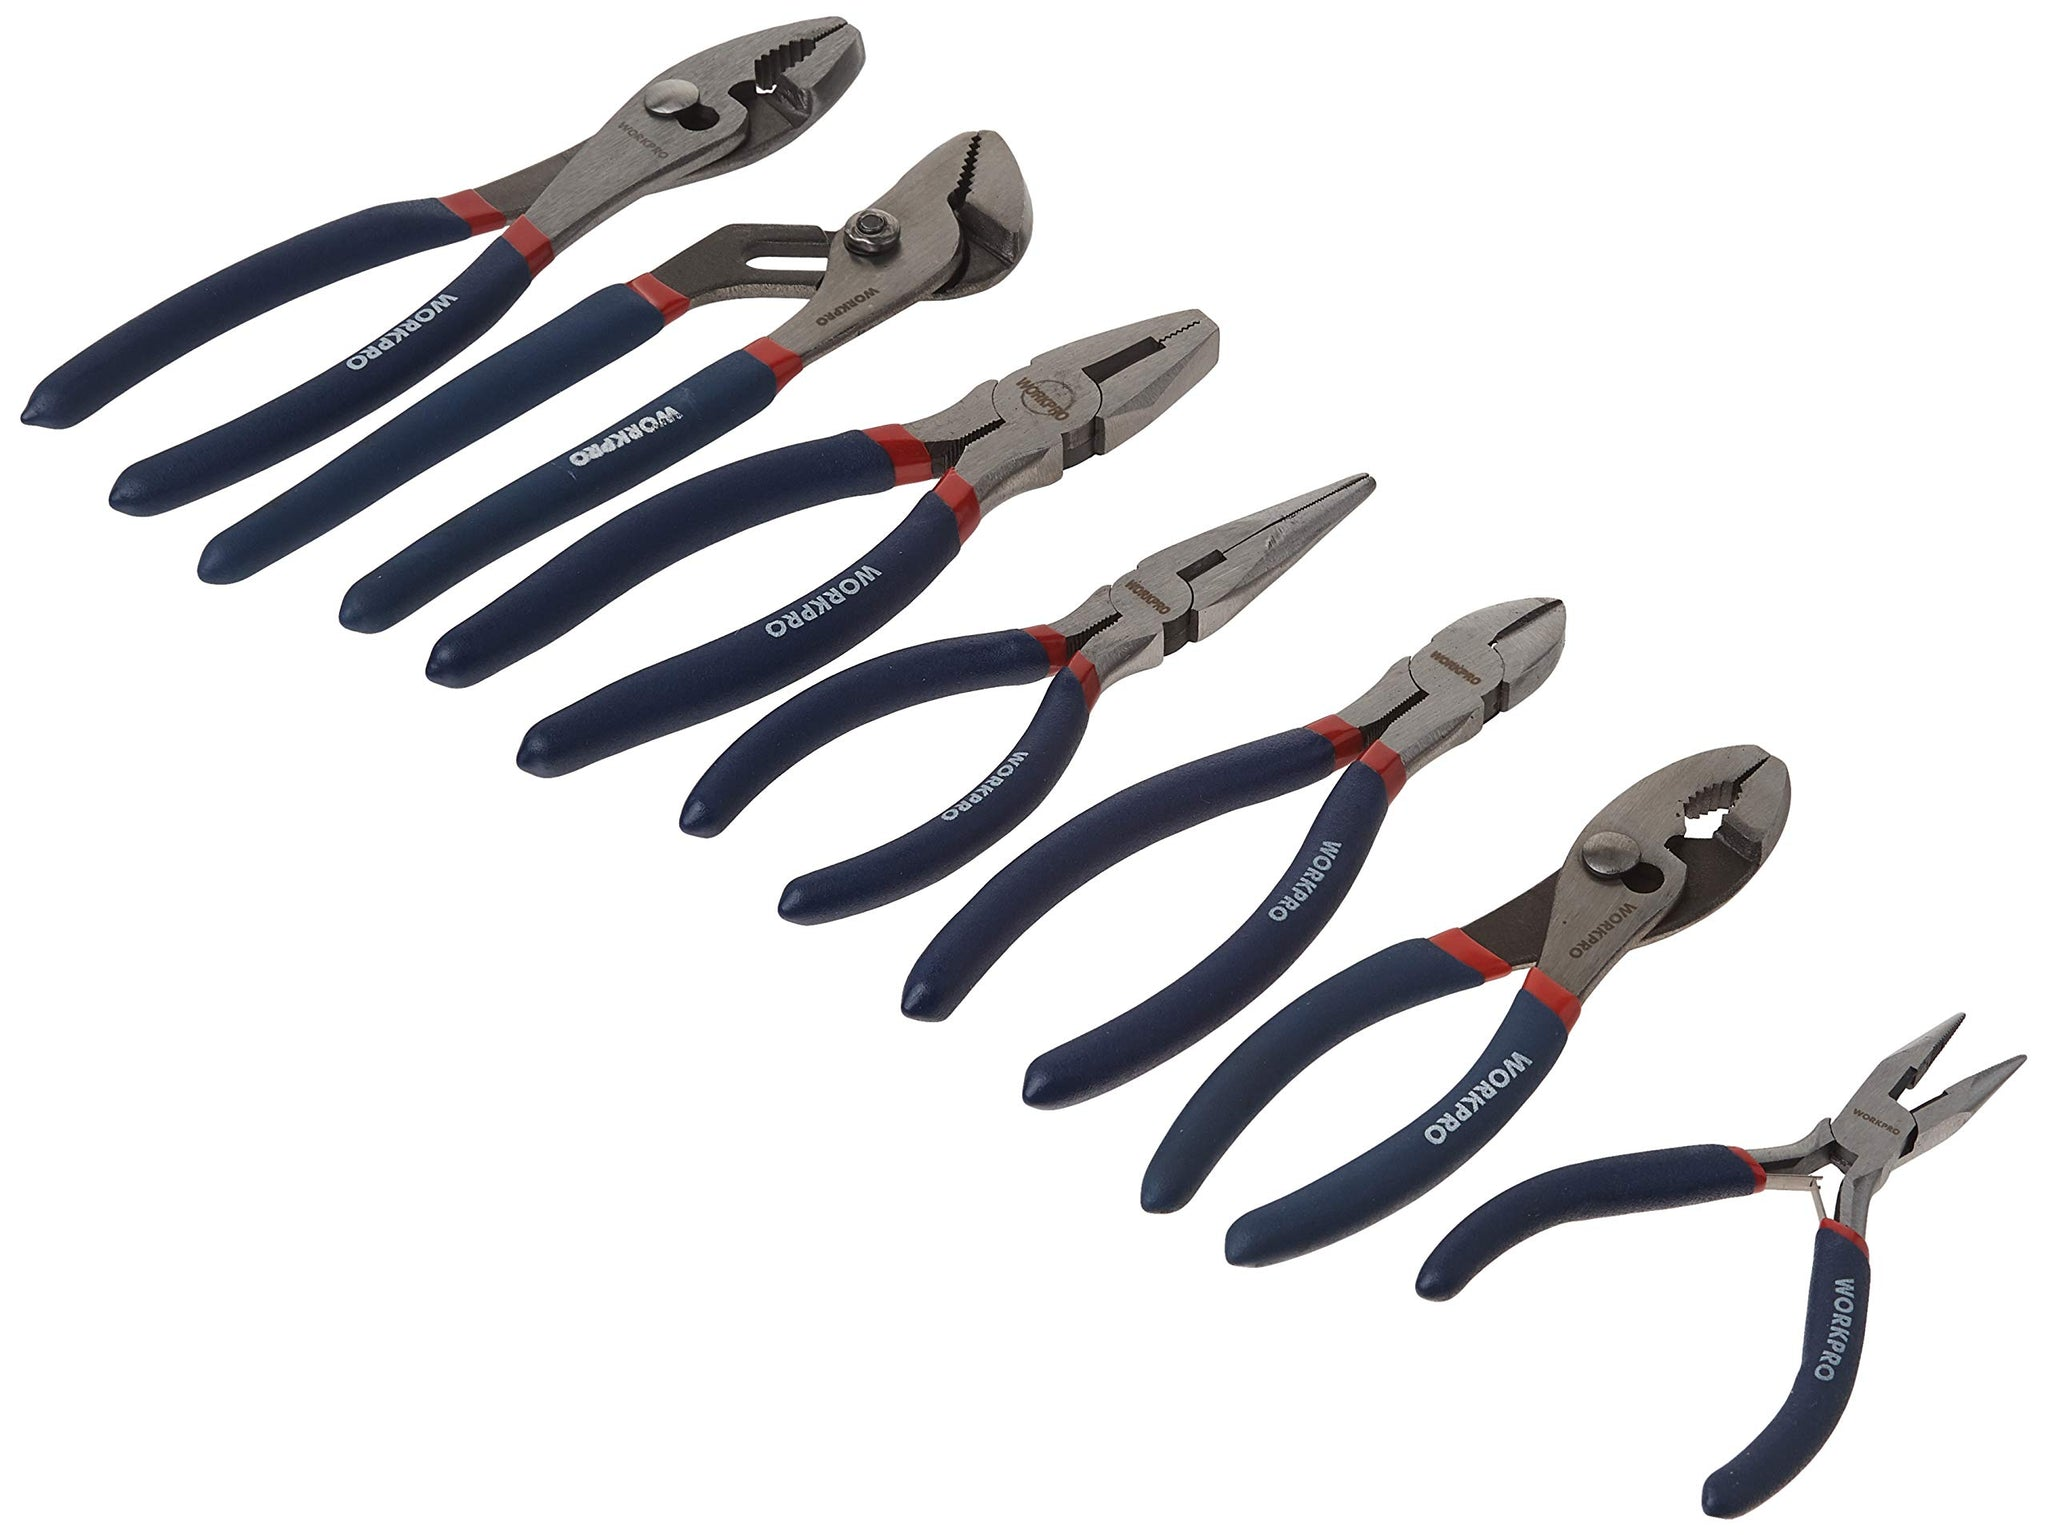 7piece Pliers Set 8-inch Groove Joint Pliers 6-inch Long Nose 6-inch Slip Joint 4-1/2 Inch Long Nose 6-inch Diagonal 7-inch Linesman 8-inch Slip Joint